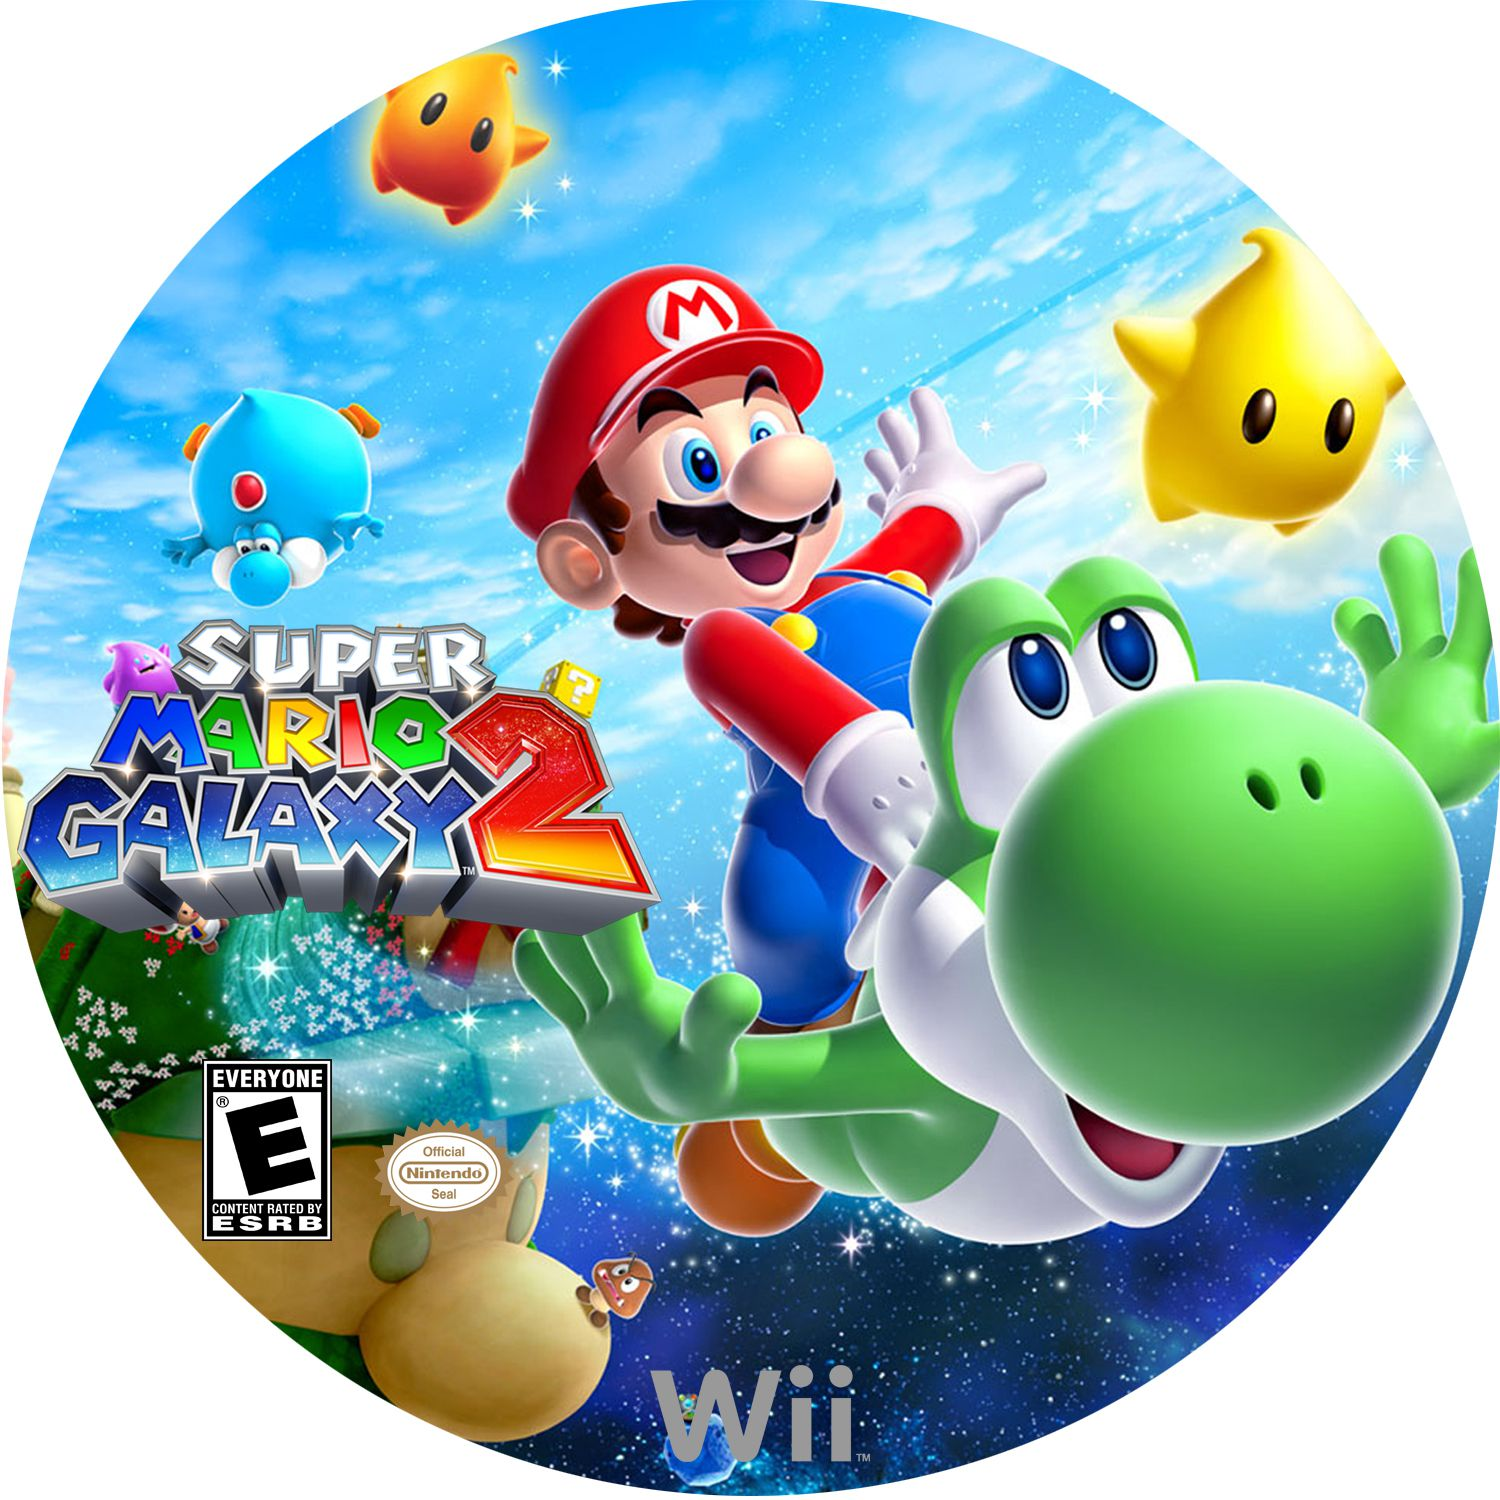 Wii clipart covers download image royalty free download COVERS.BOX.SK ::: Super Mario Galaxy 2 (2010) Wii - high ... image royalty free download